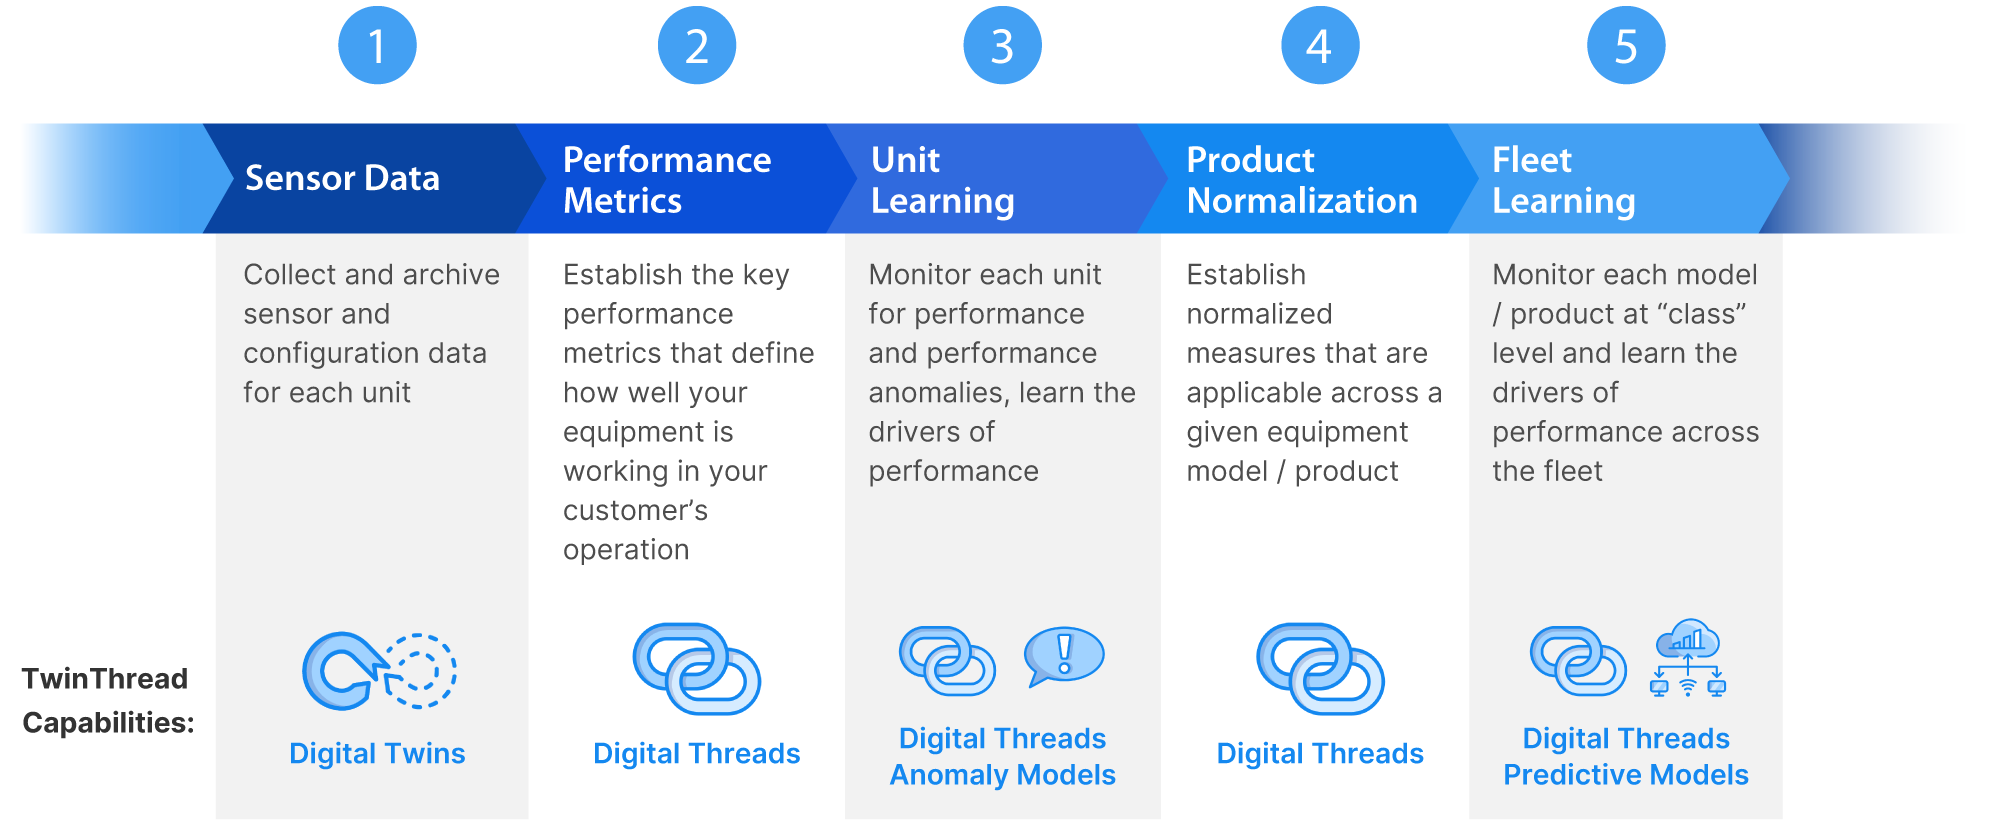 TwinThread gives you visibility into your sensor data, performance metrics, anomalies, normalized measures, and drivers of value - ensuring you are able to quickly learn and apply the actions that produce results.